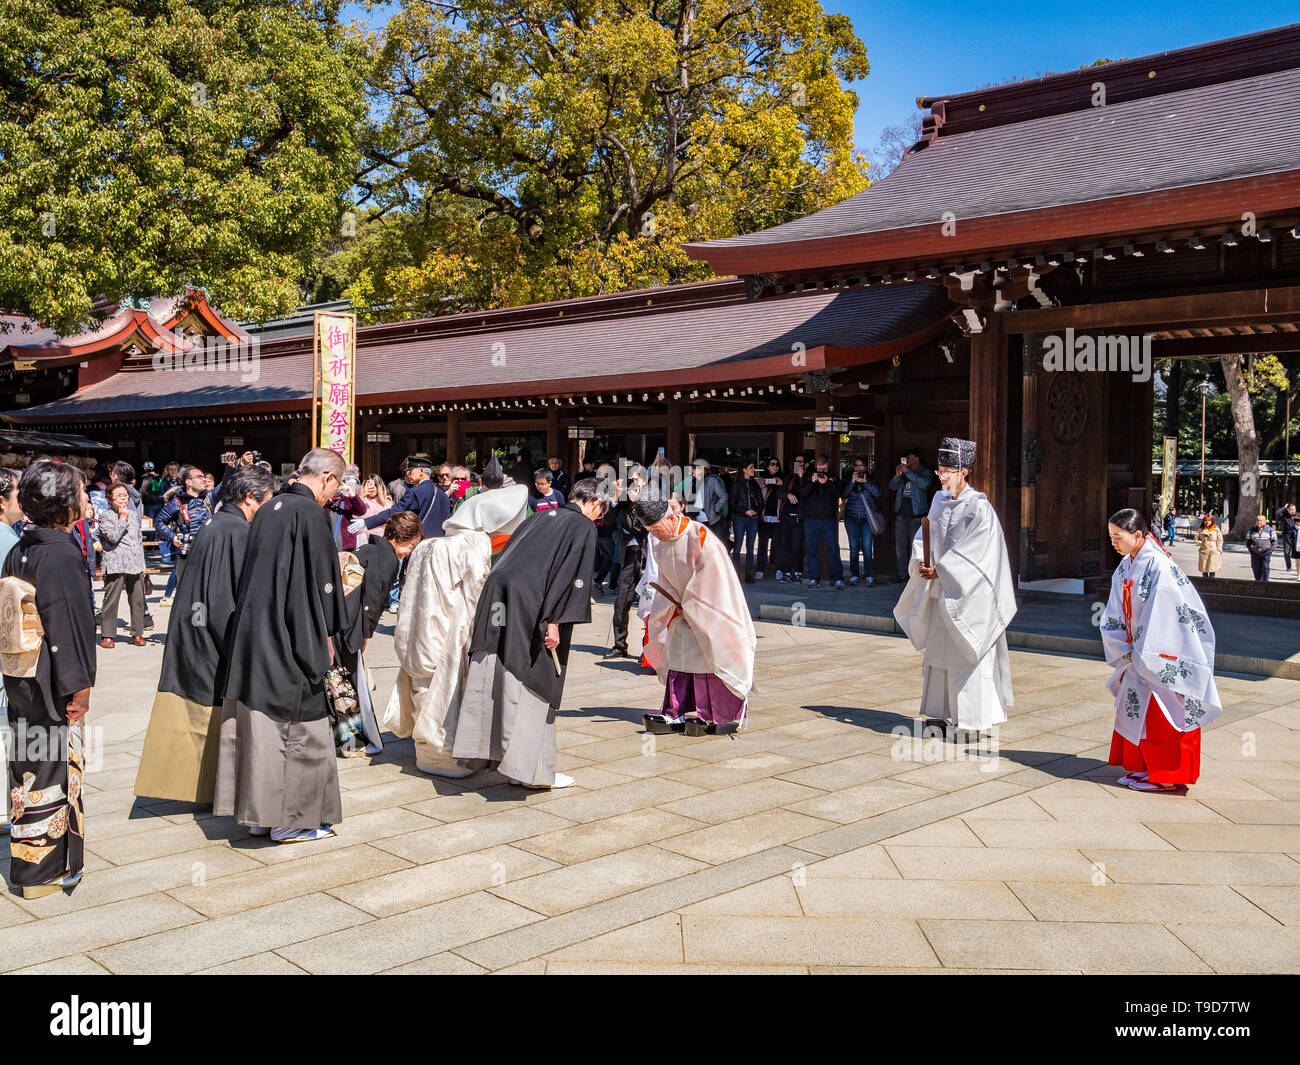 24 March 2019: Tokyo, Japan - Part of a traditional Shinto marriage ceremony at the Meiji Jingu shrine in Tokyo. Stock Photo